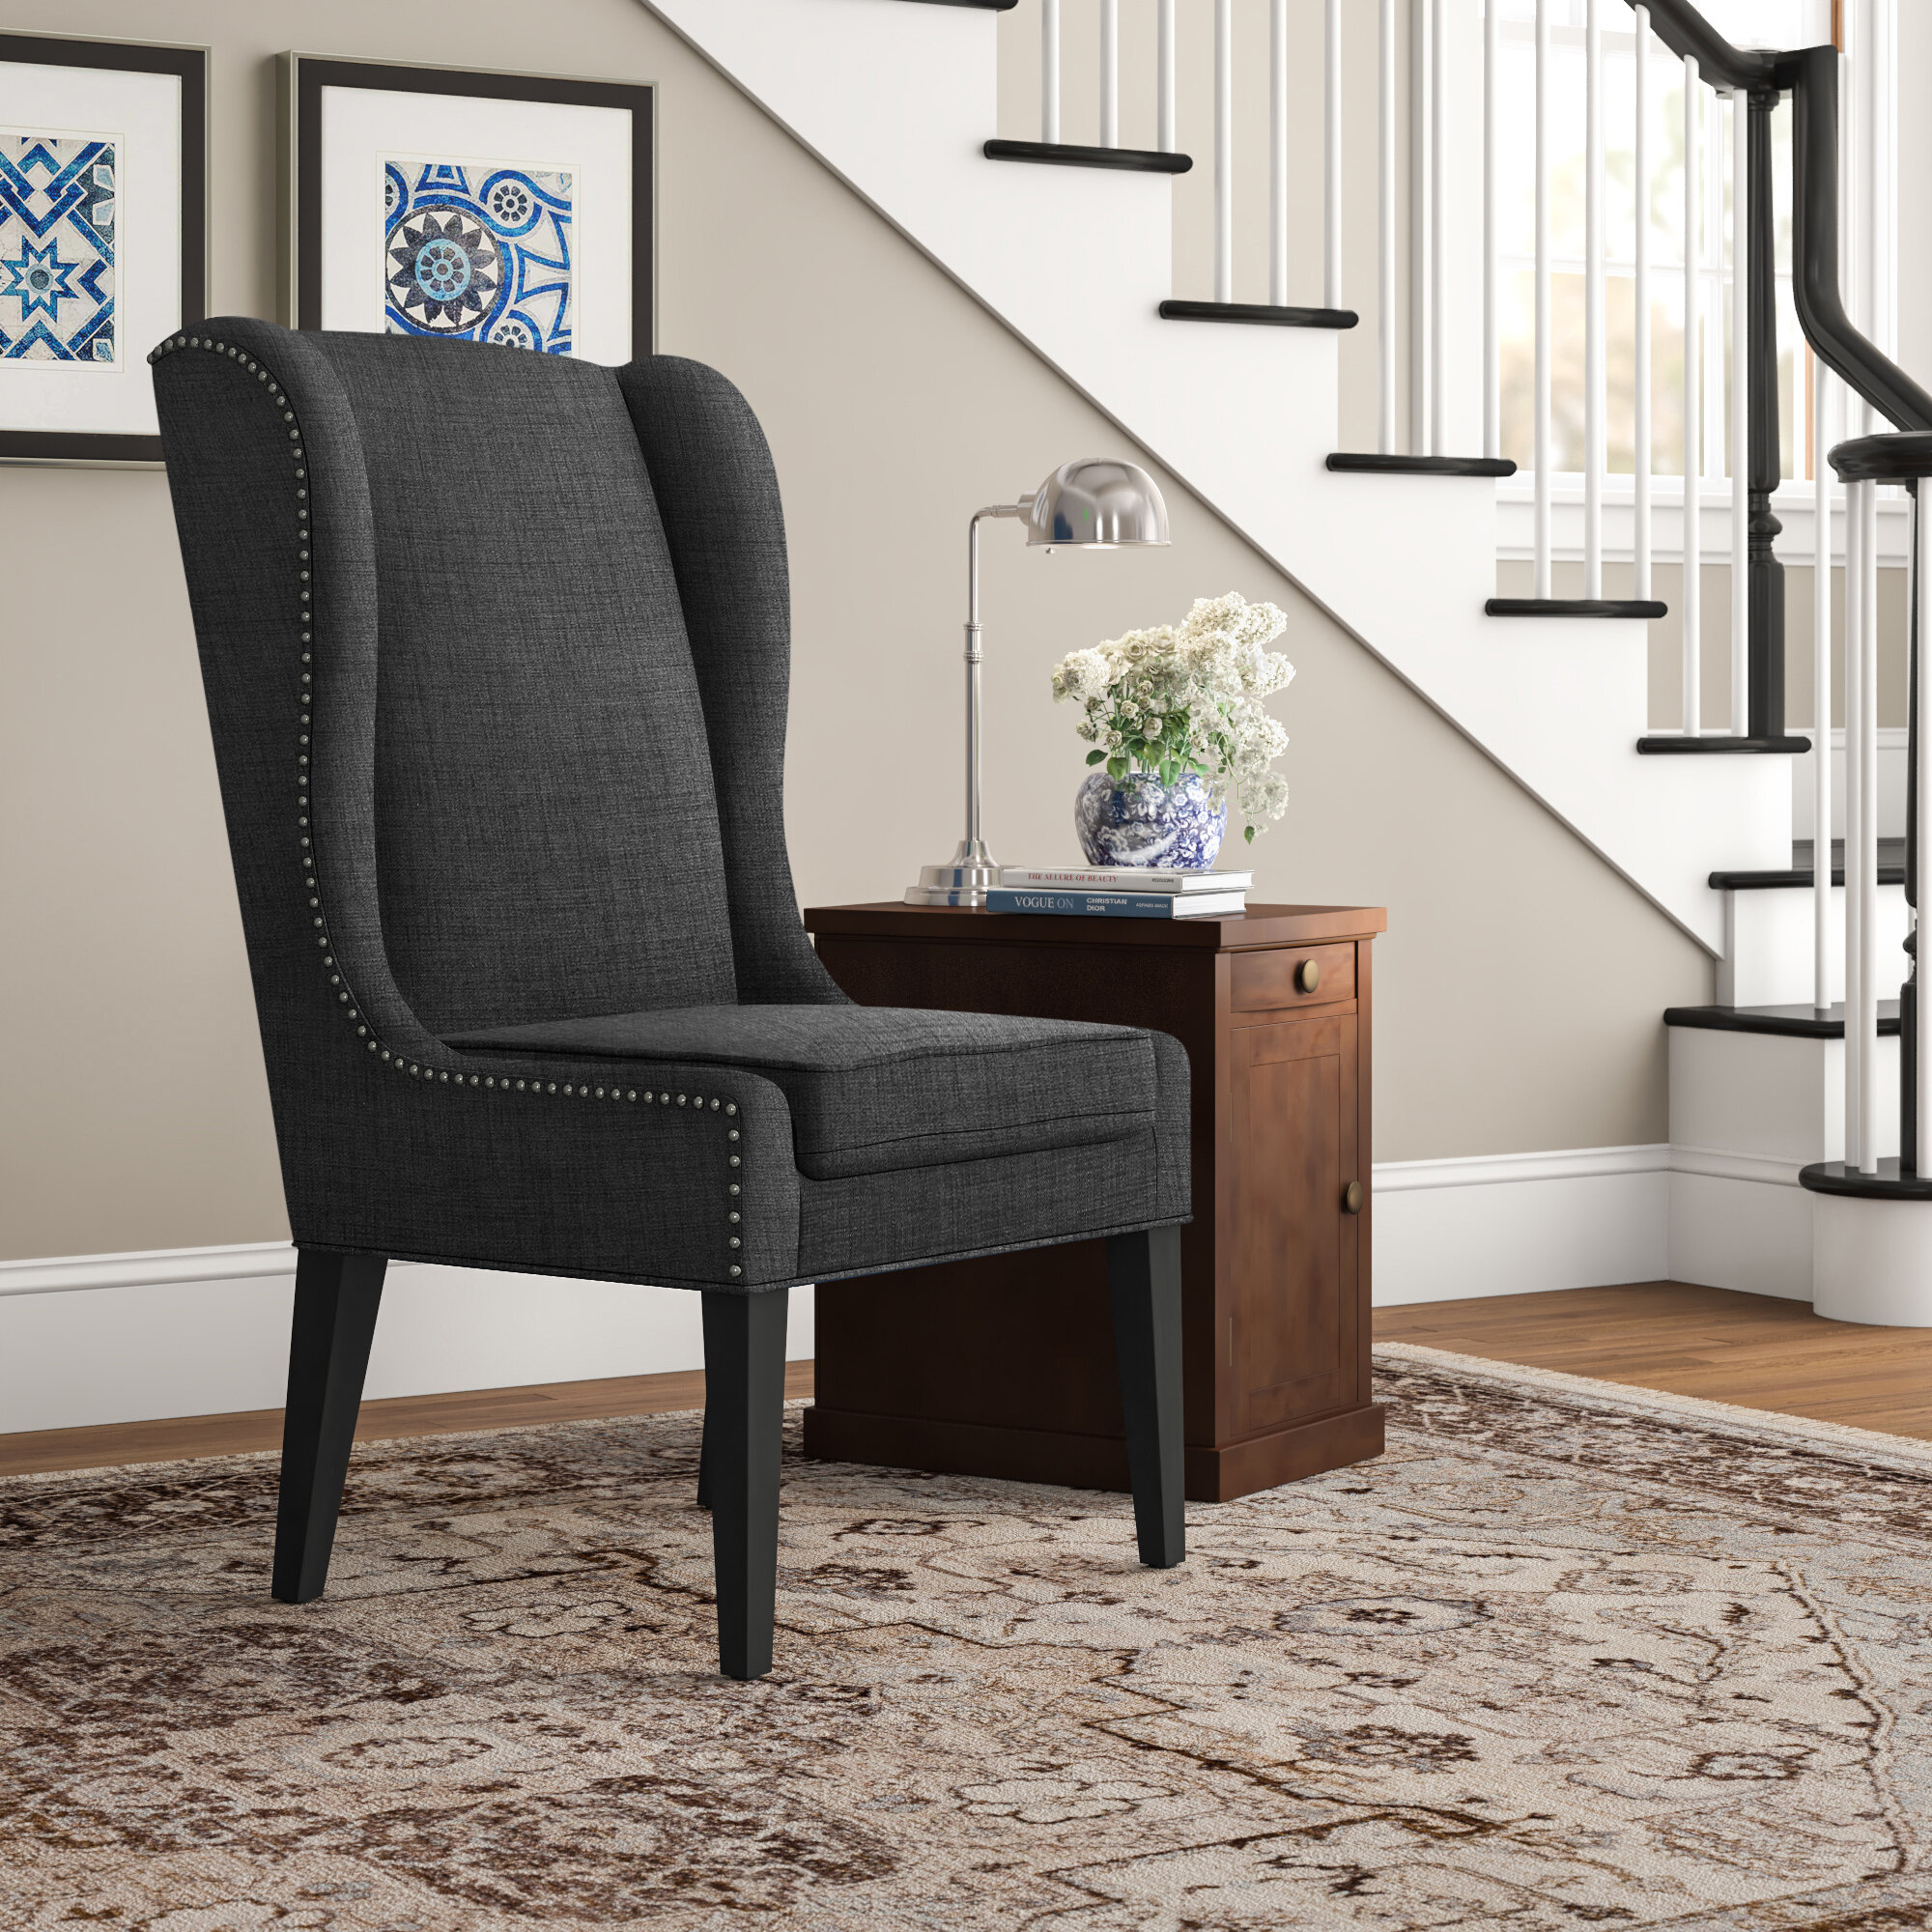 Three Posts™ Andover Wingback Chair & Reviews | Wayfair In Andover Wingback Chairs (View 3 of 15)